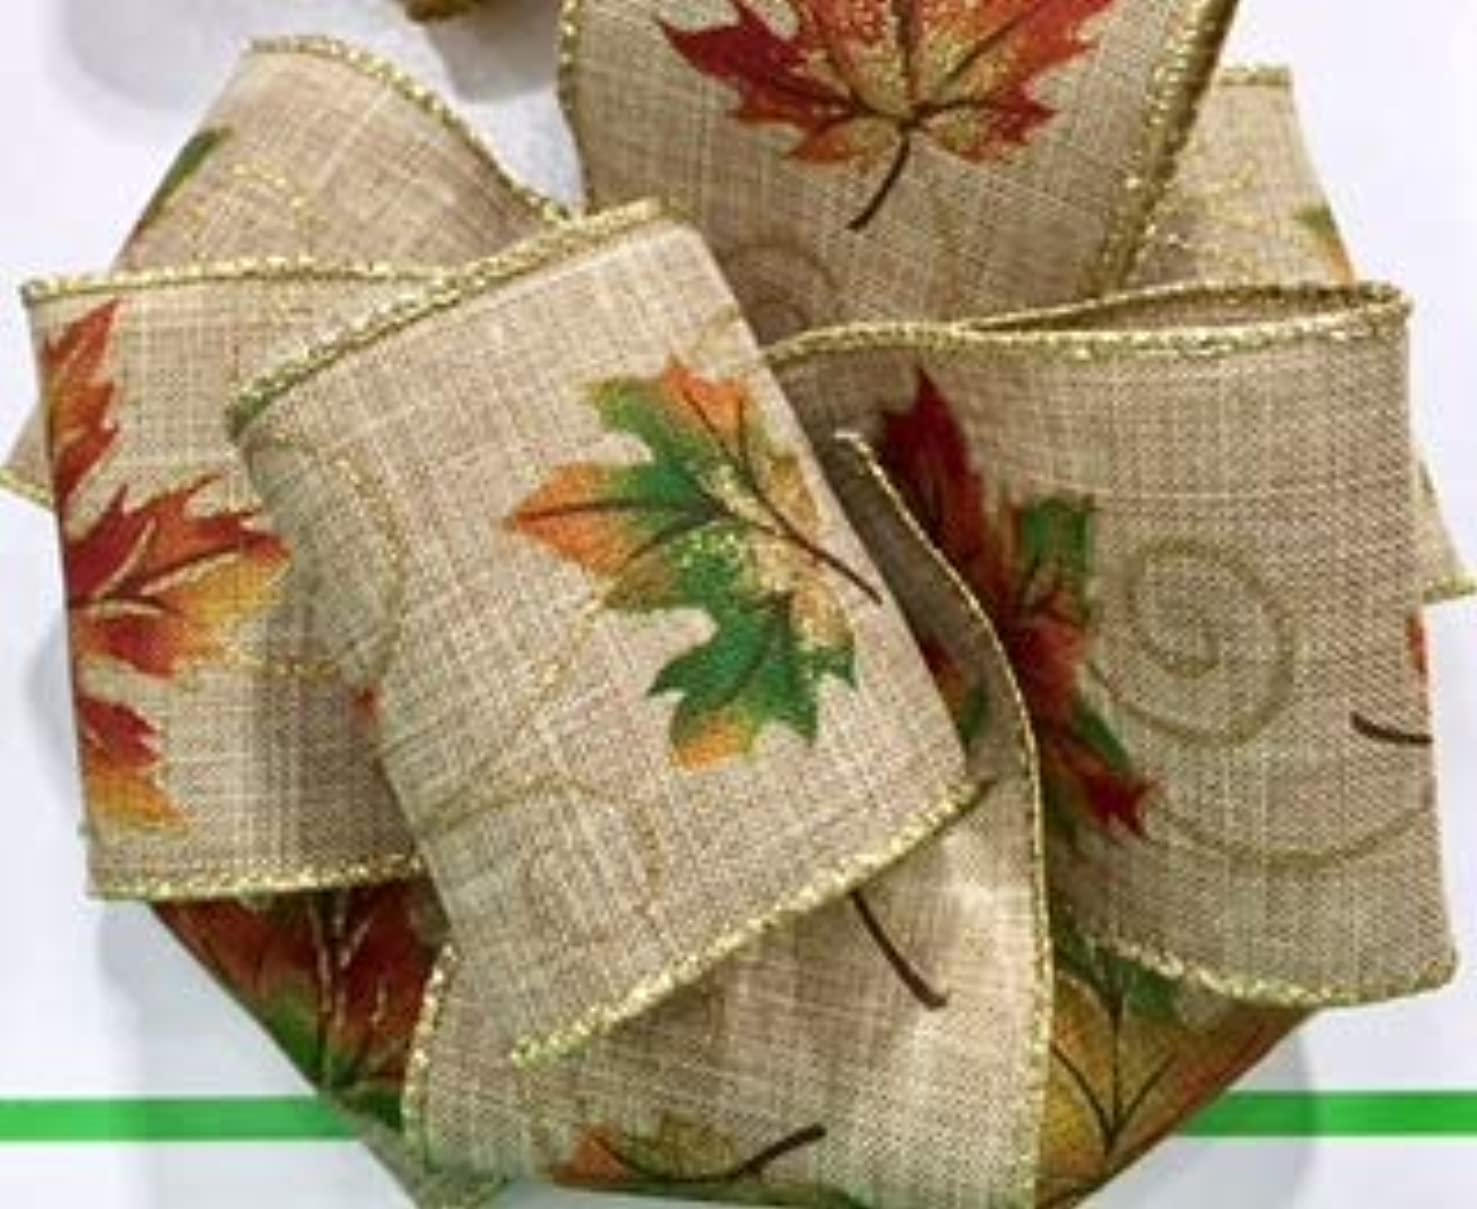 Wired Edge Burlap Ribbon with Fall Themed Leaves and Gold Trim - 100% Polyester 10 Yards, 2-1/4